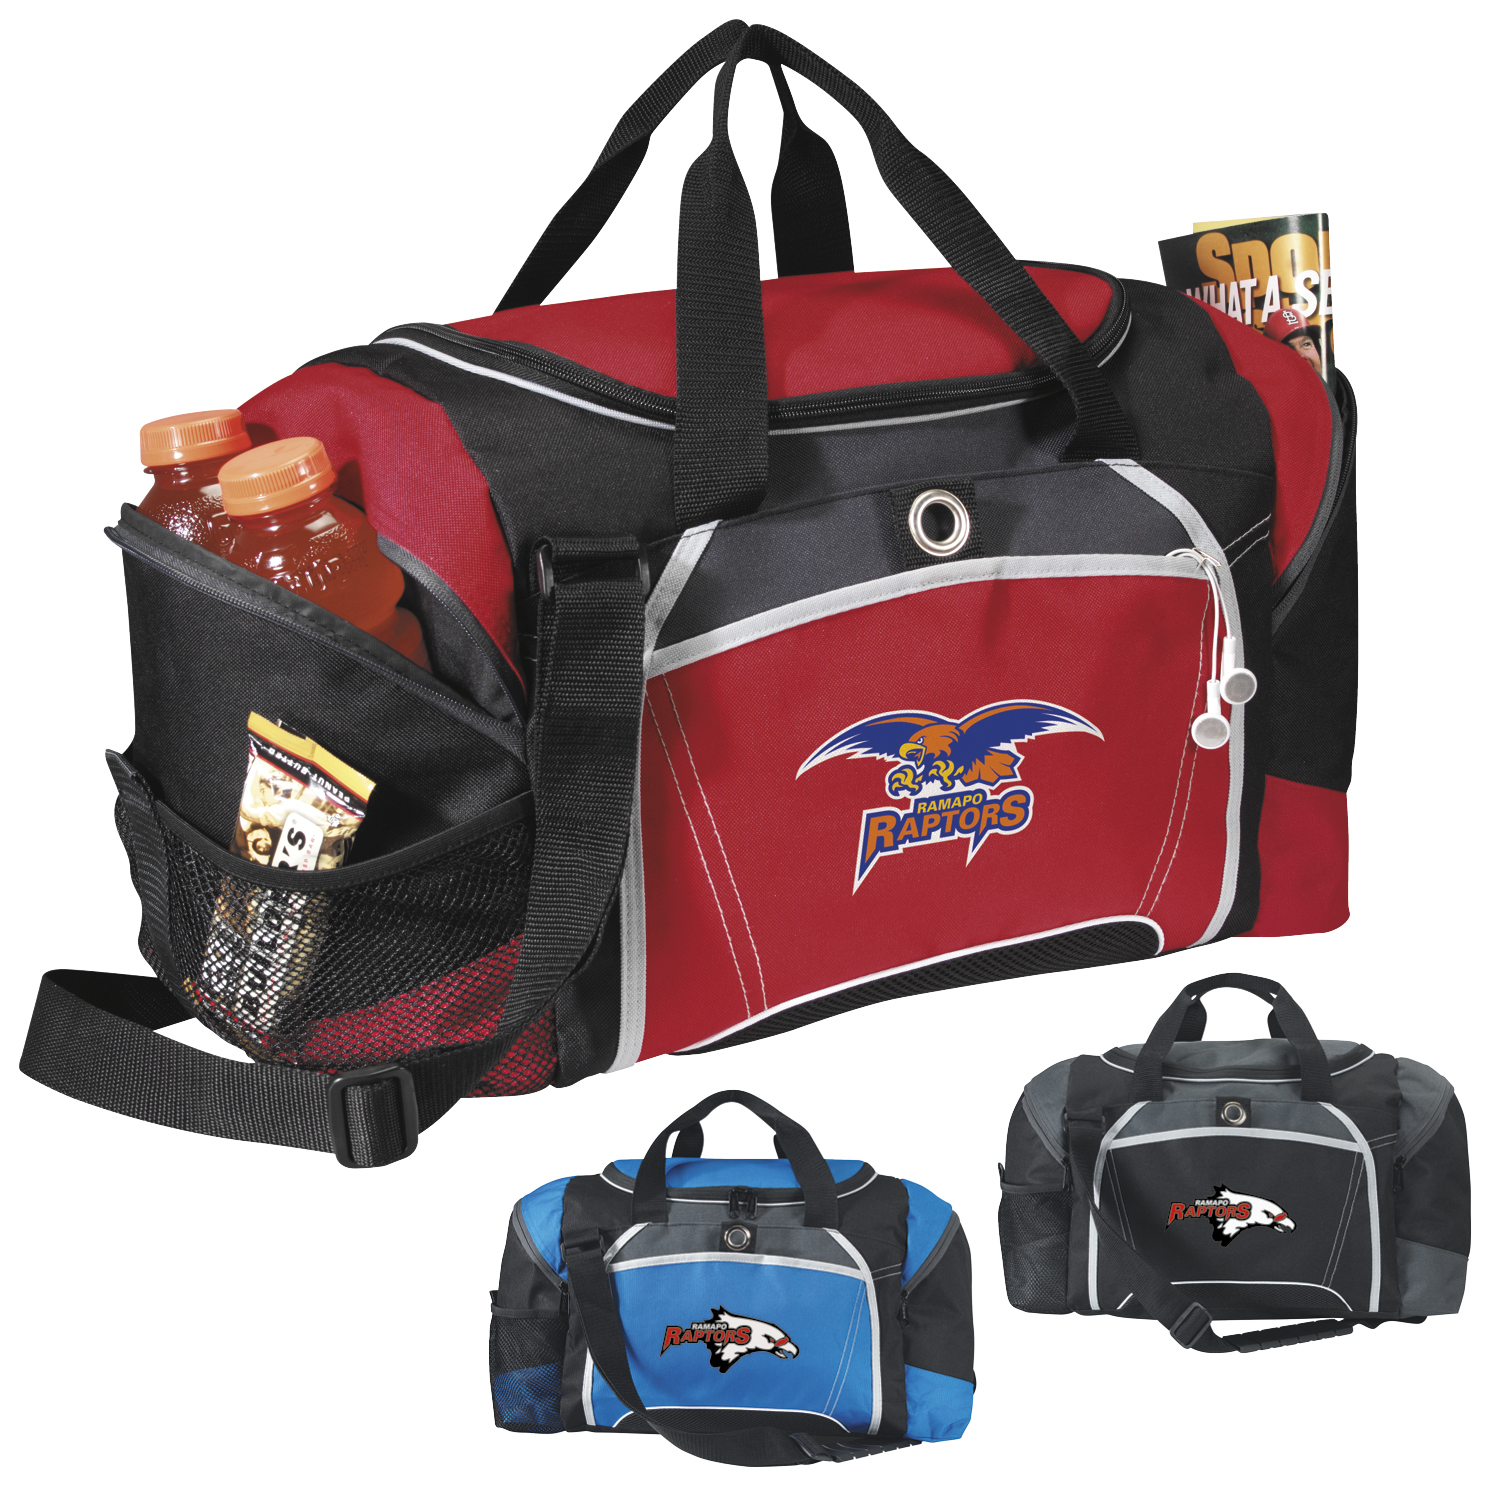 Atchison® AP6050 Power Play Duffel